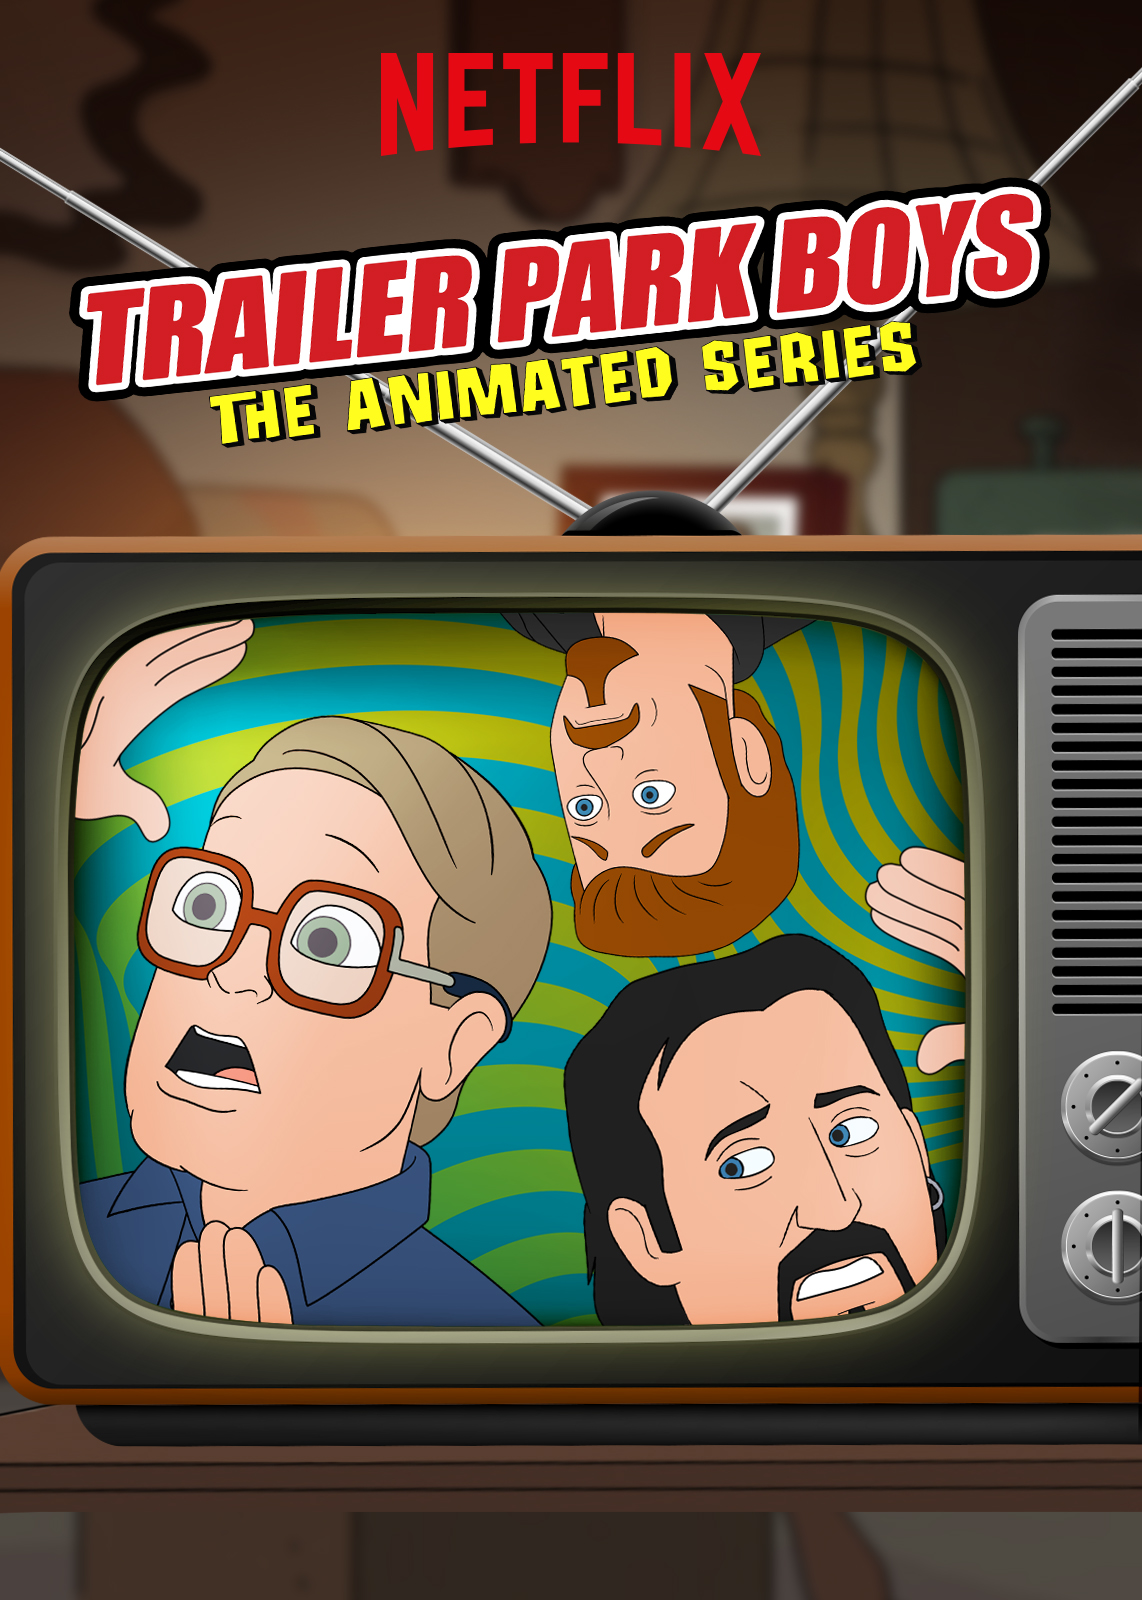 Trailer.Park.Boys.The.Animated.Series.S02E02.SPANiSH.1080p.WEB.x264-4FiRE